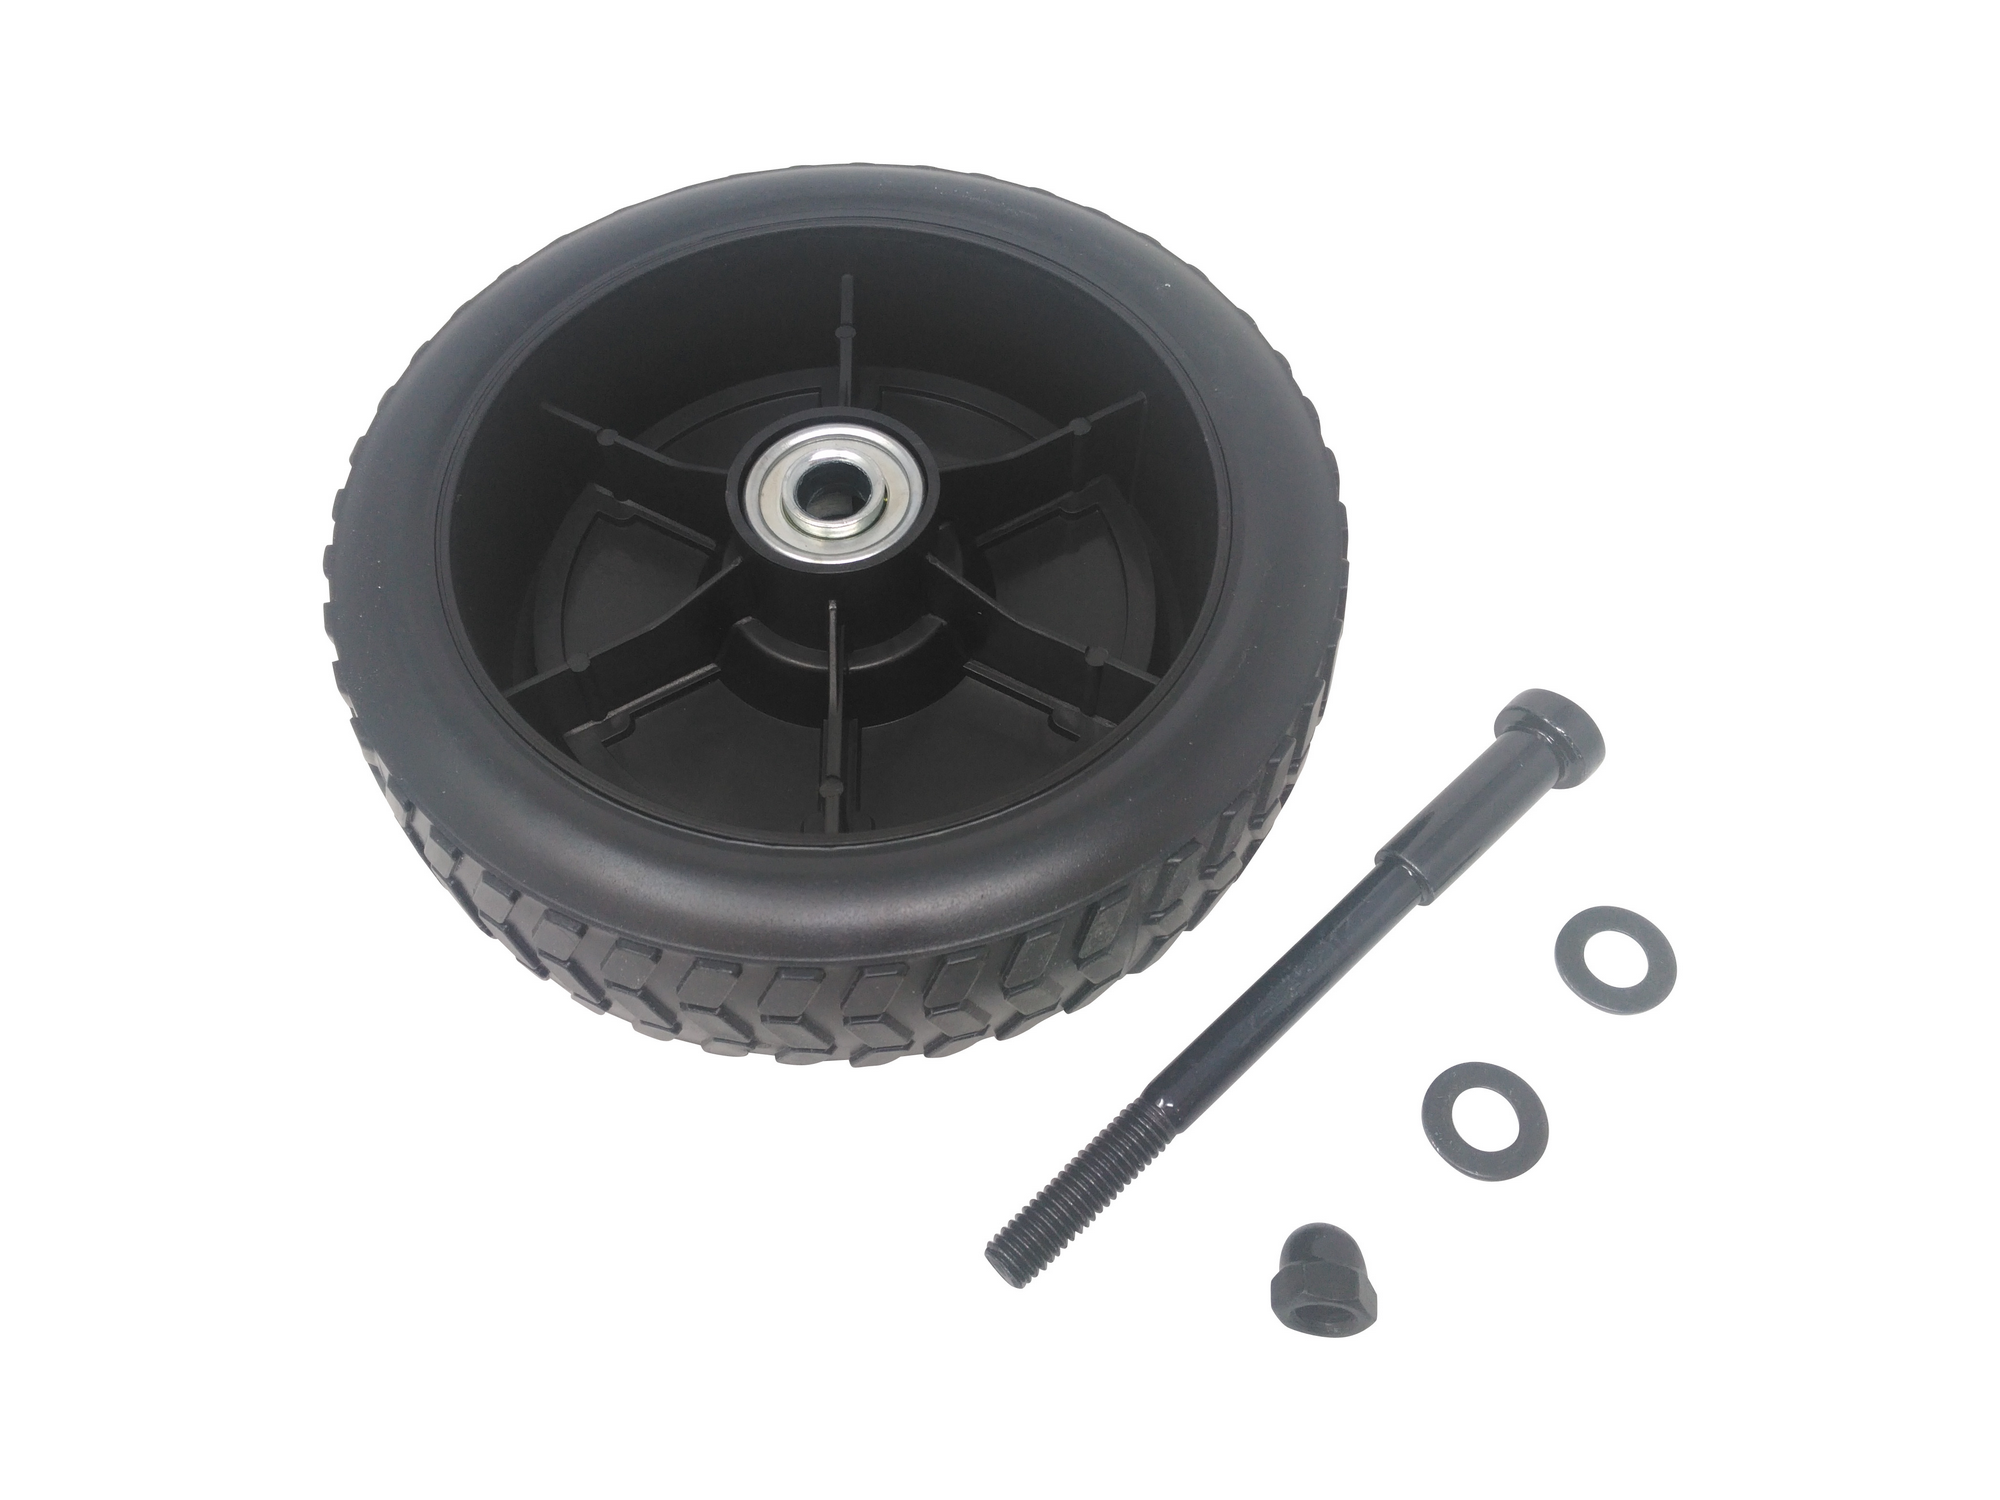 KIT0138 | Treager Wheel Kit (KIT0138) HDW332 / HDW343